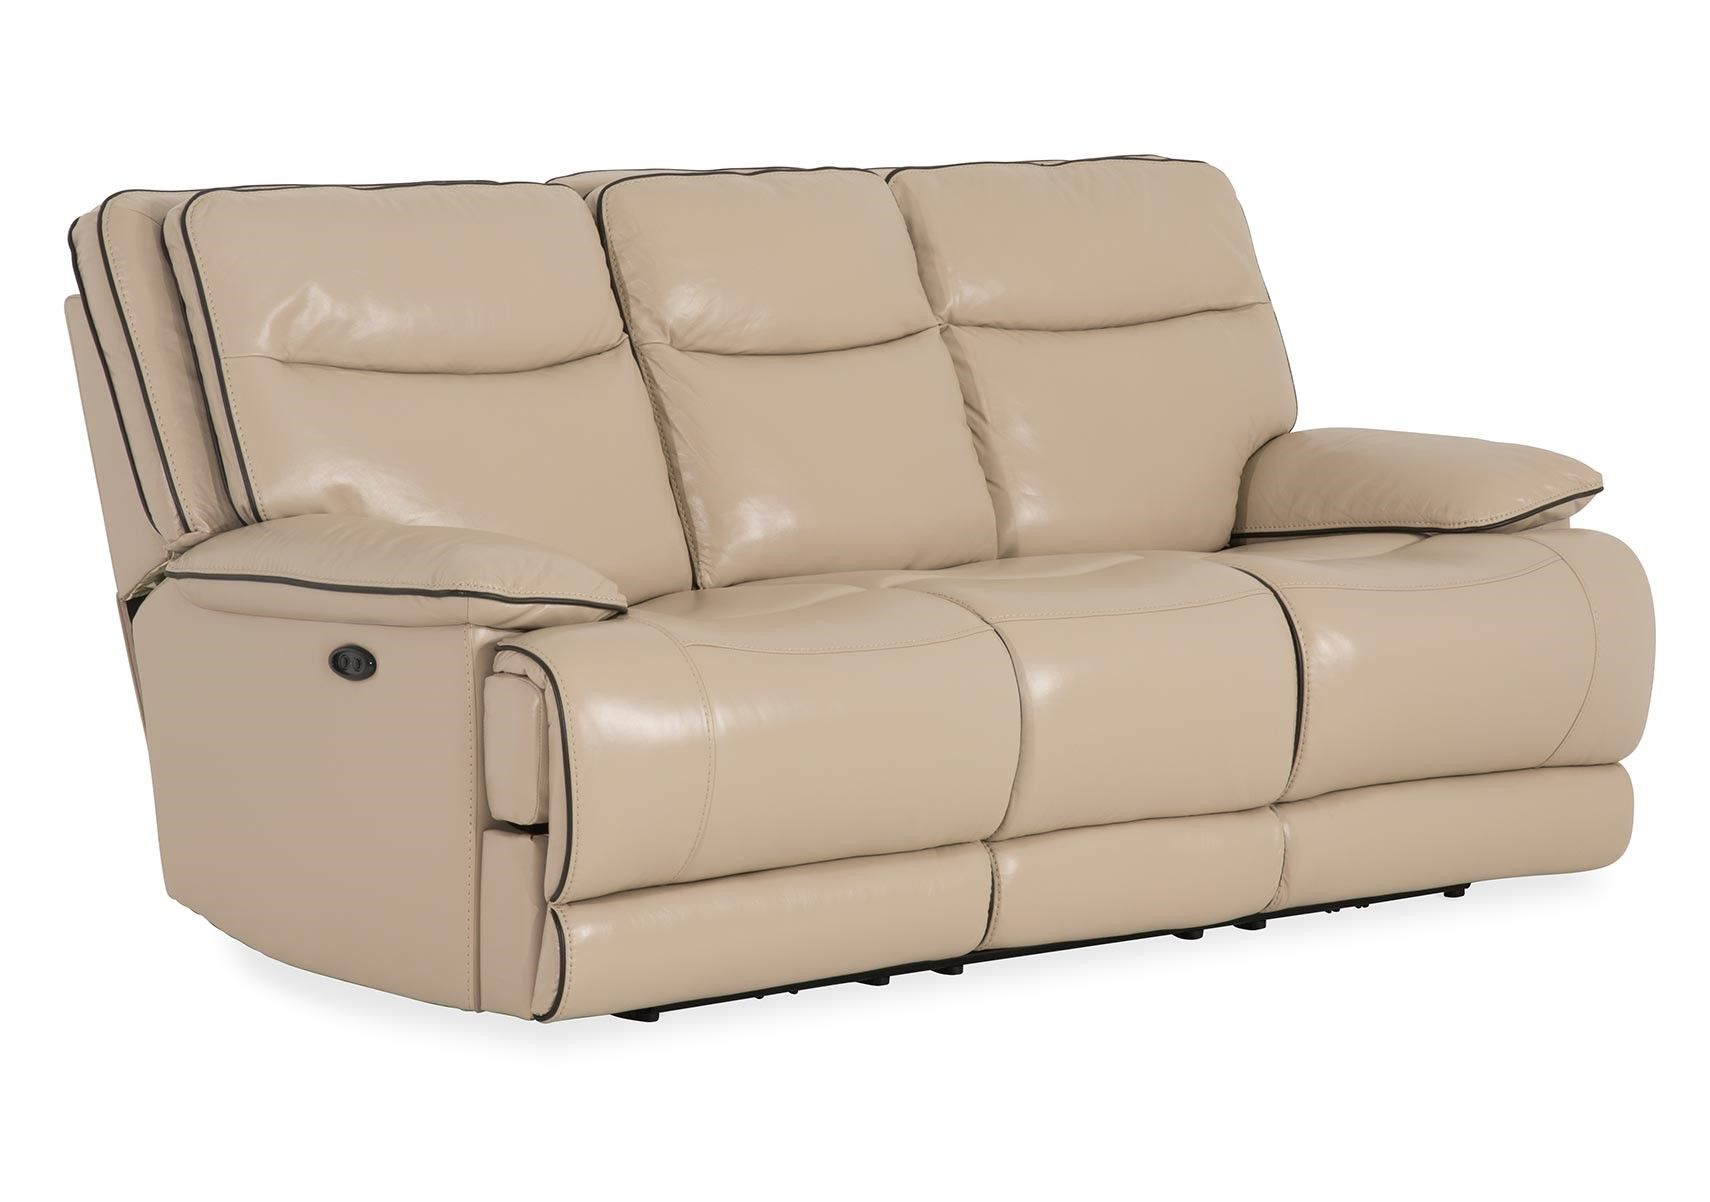 Charmant Lacks | Owen Dual Reclining Sofa